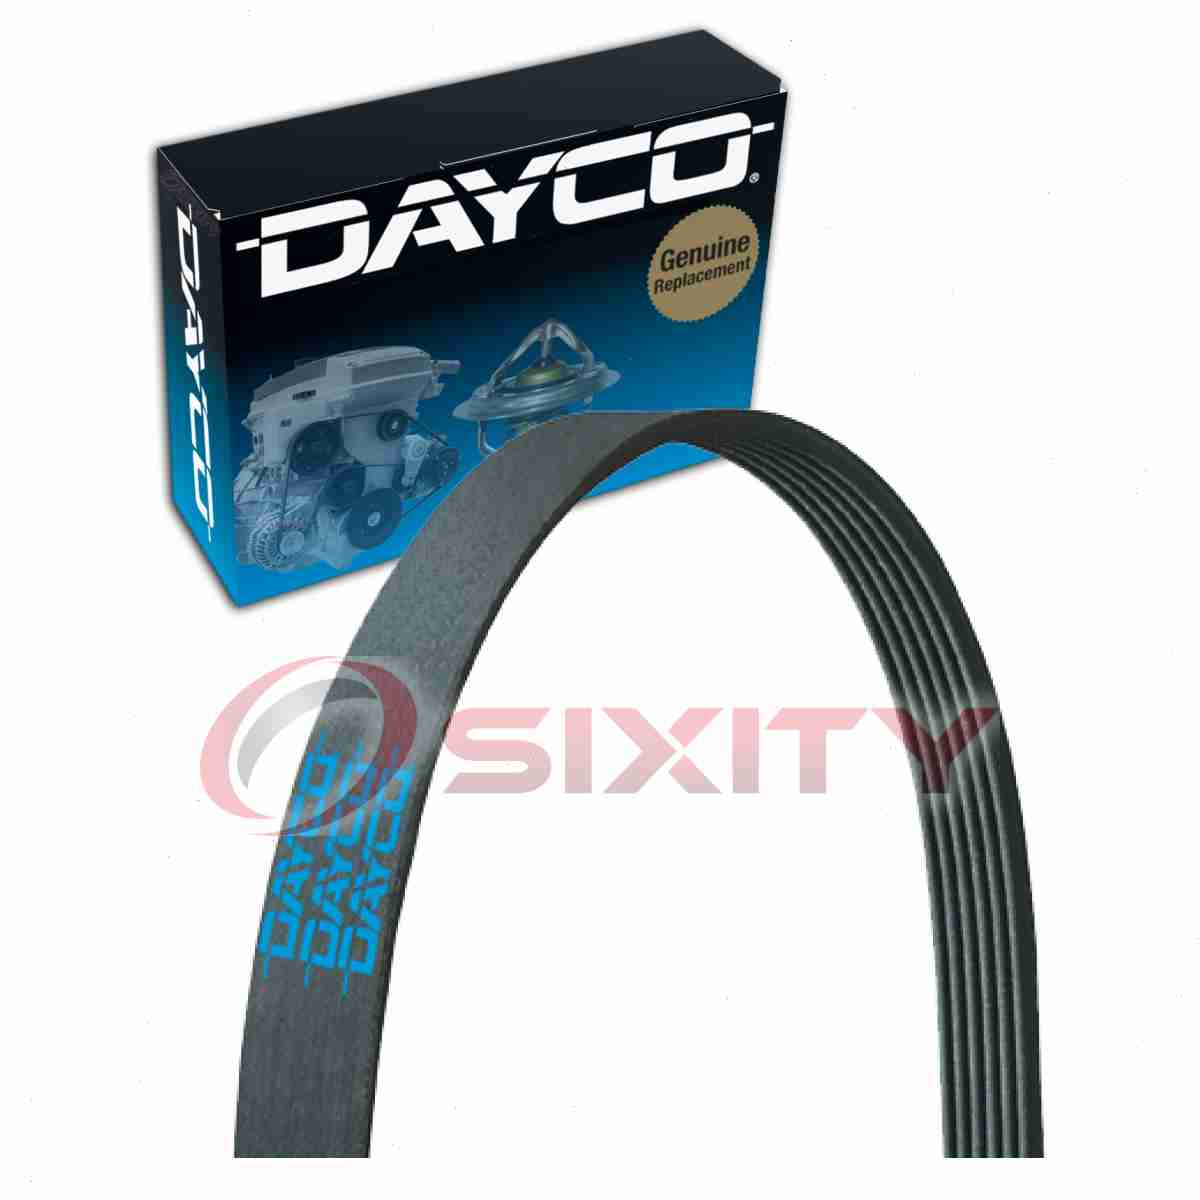 Dayco Serpentine Belt 1997 2001 Dodge Ram 1500 52l 59l V8 39l Truck Cap Wiring Built For Passenger Cars And Light Duty Trucks The Extensive Line Of Poly Rib Belts Are Engineered High Mileage Demanding Drives